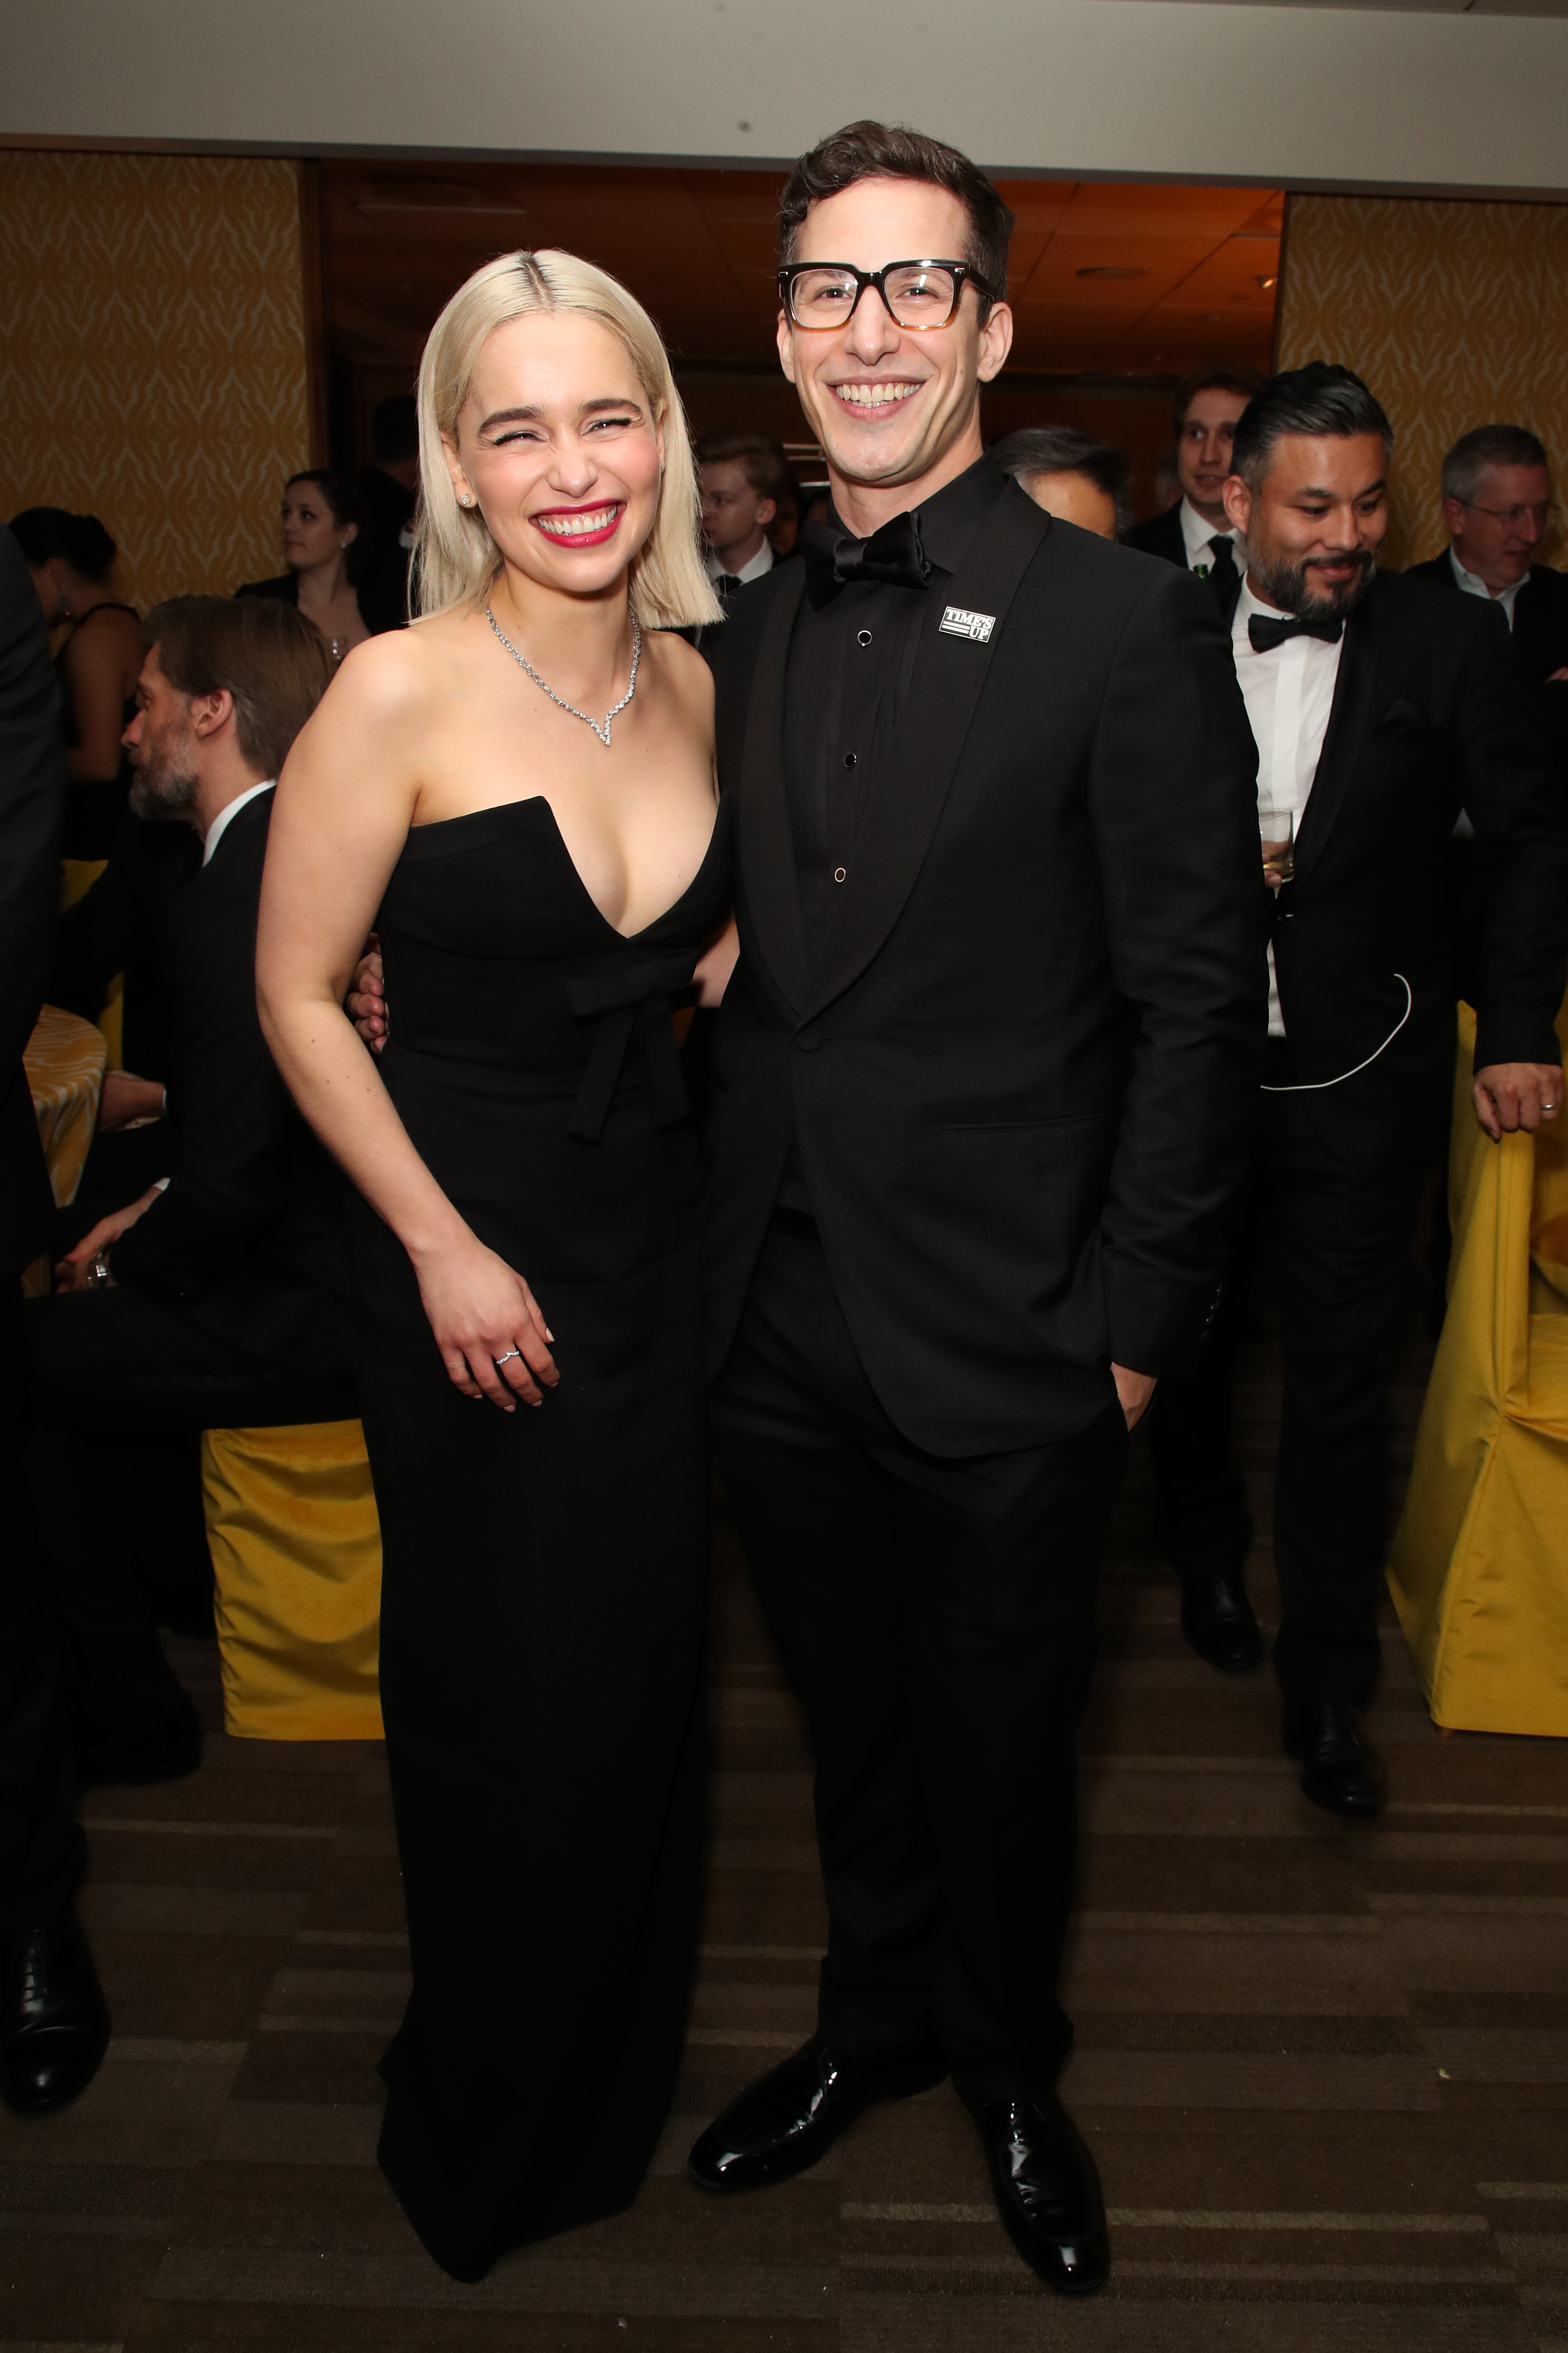 Emilia Clarke and Andy Samberg hang out during HBO's Golden Globes afterparty in Beverly Hills on Jan. 7, 2018.